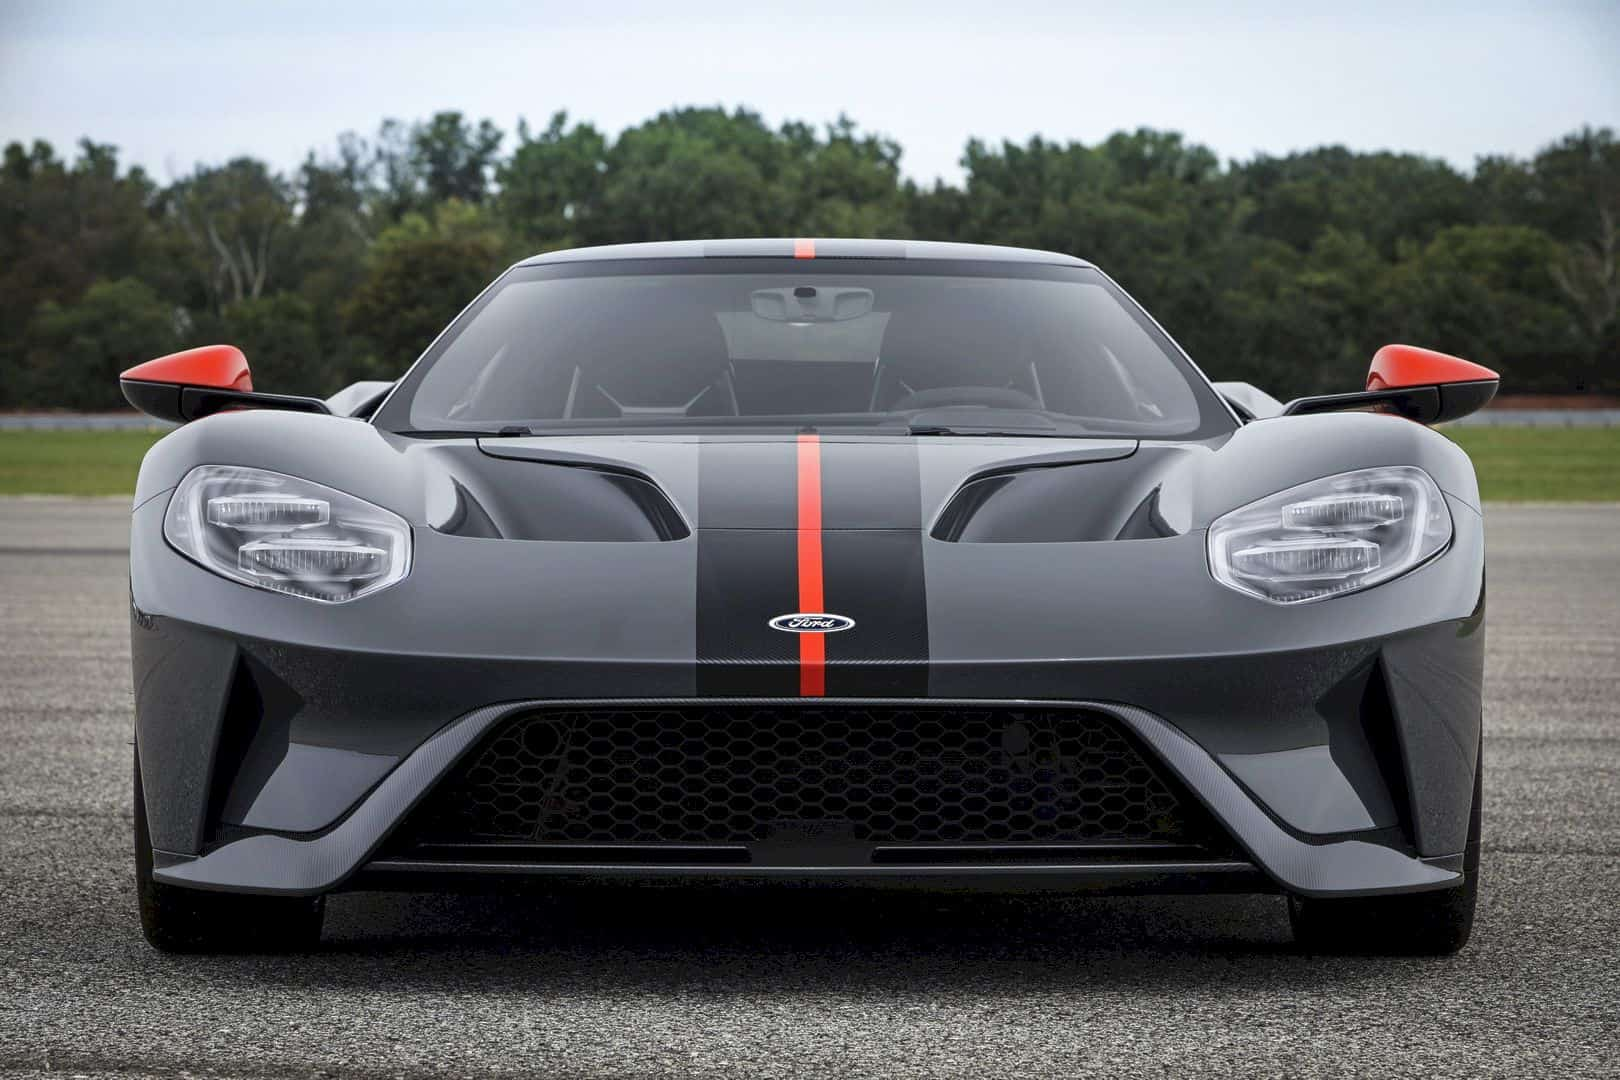 2019 FORD GT Carbon Series: Attacks Track and Drive Home!